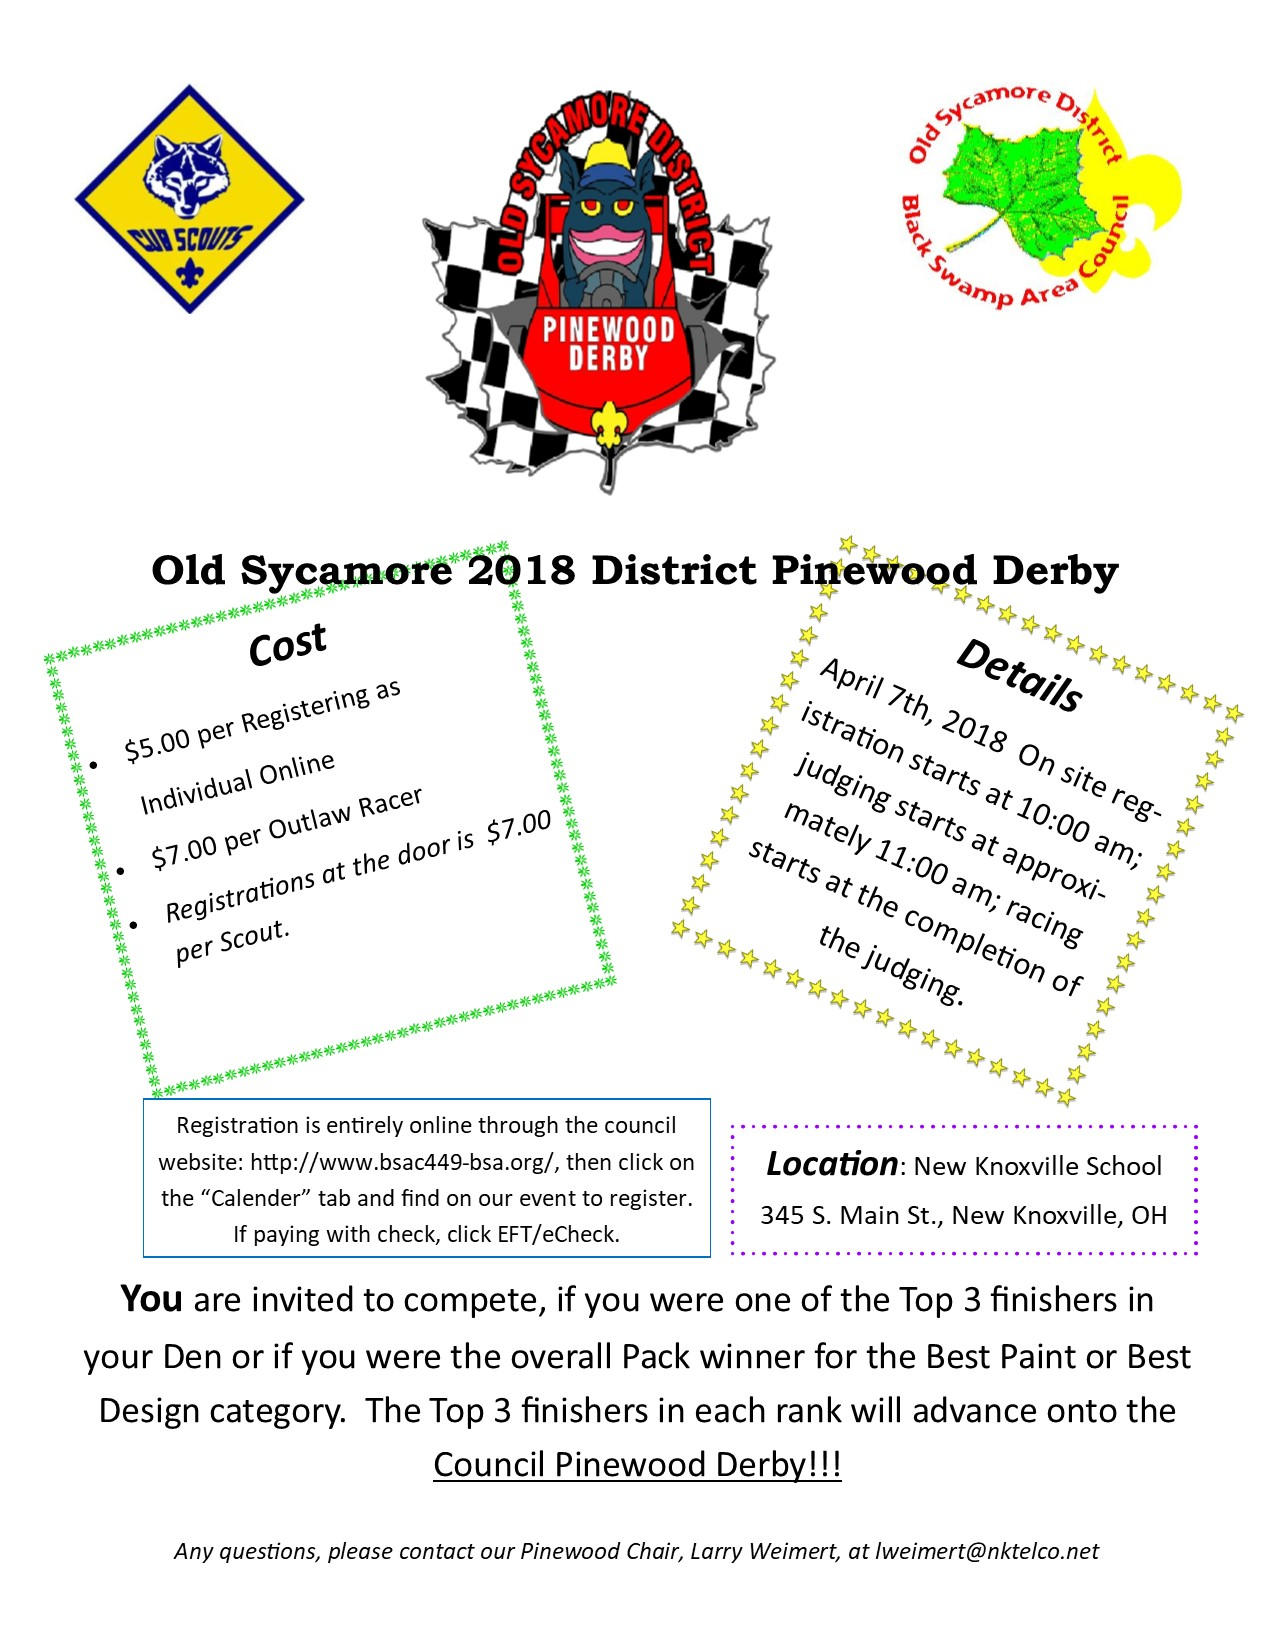 picture regarding Pinewood Derby Awards Printable known as 2018 Aged Sycamore District Pinewood Derby